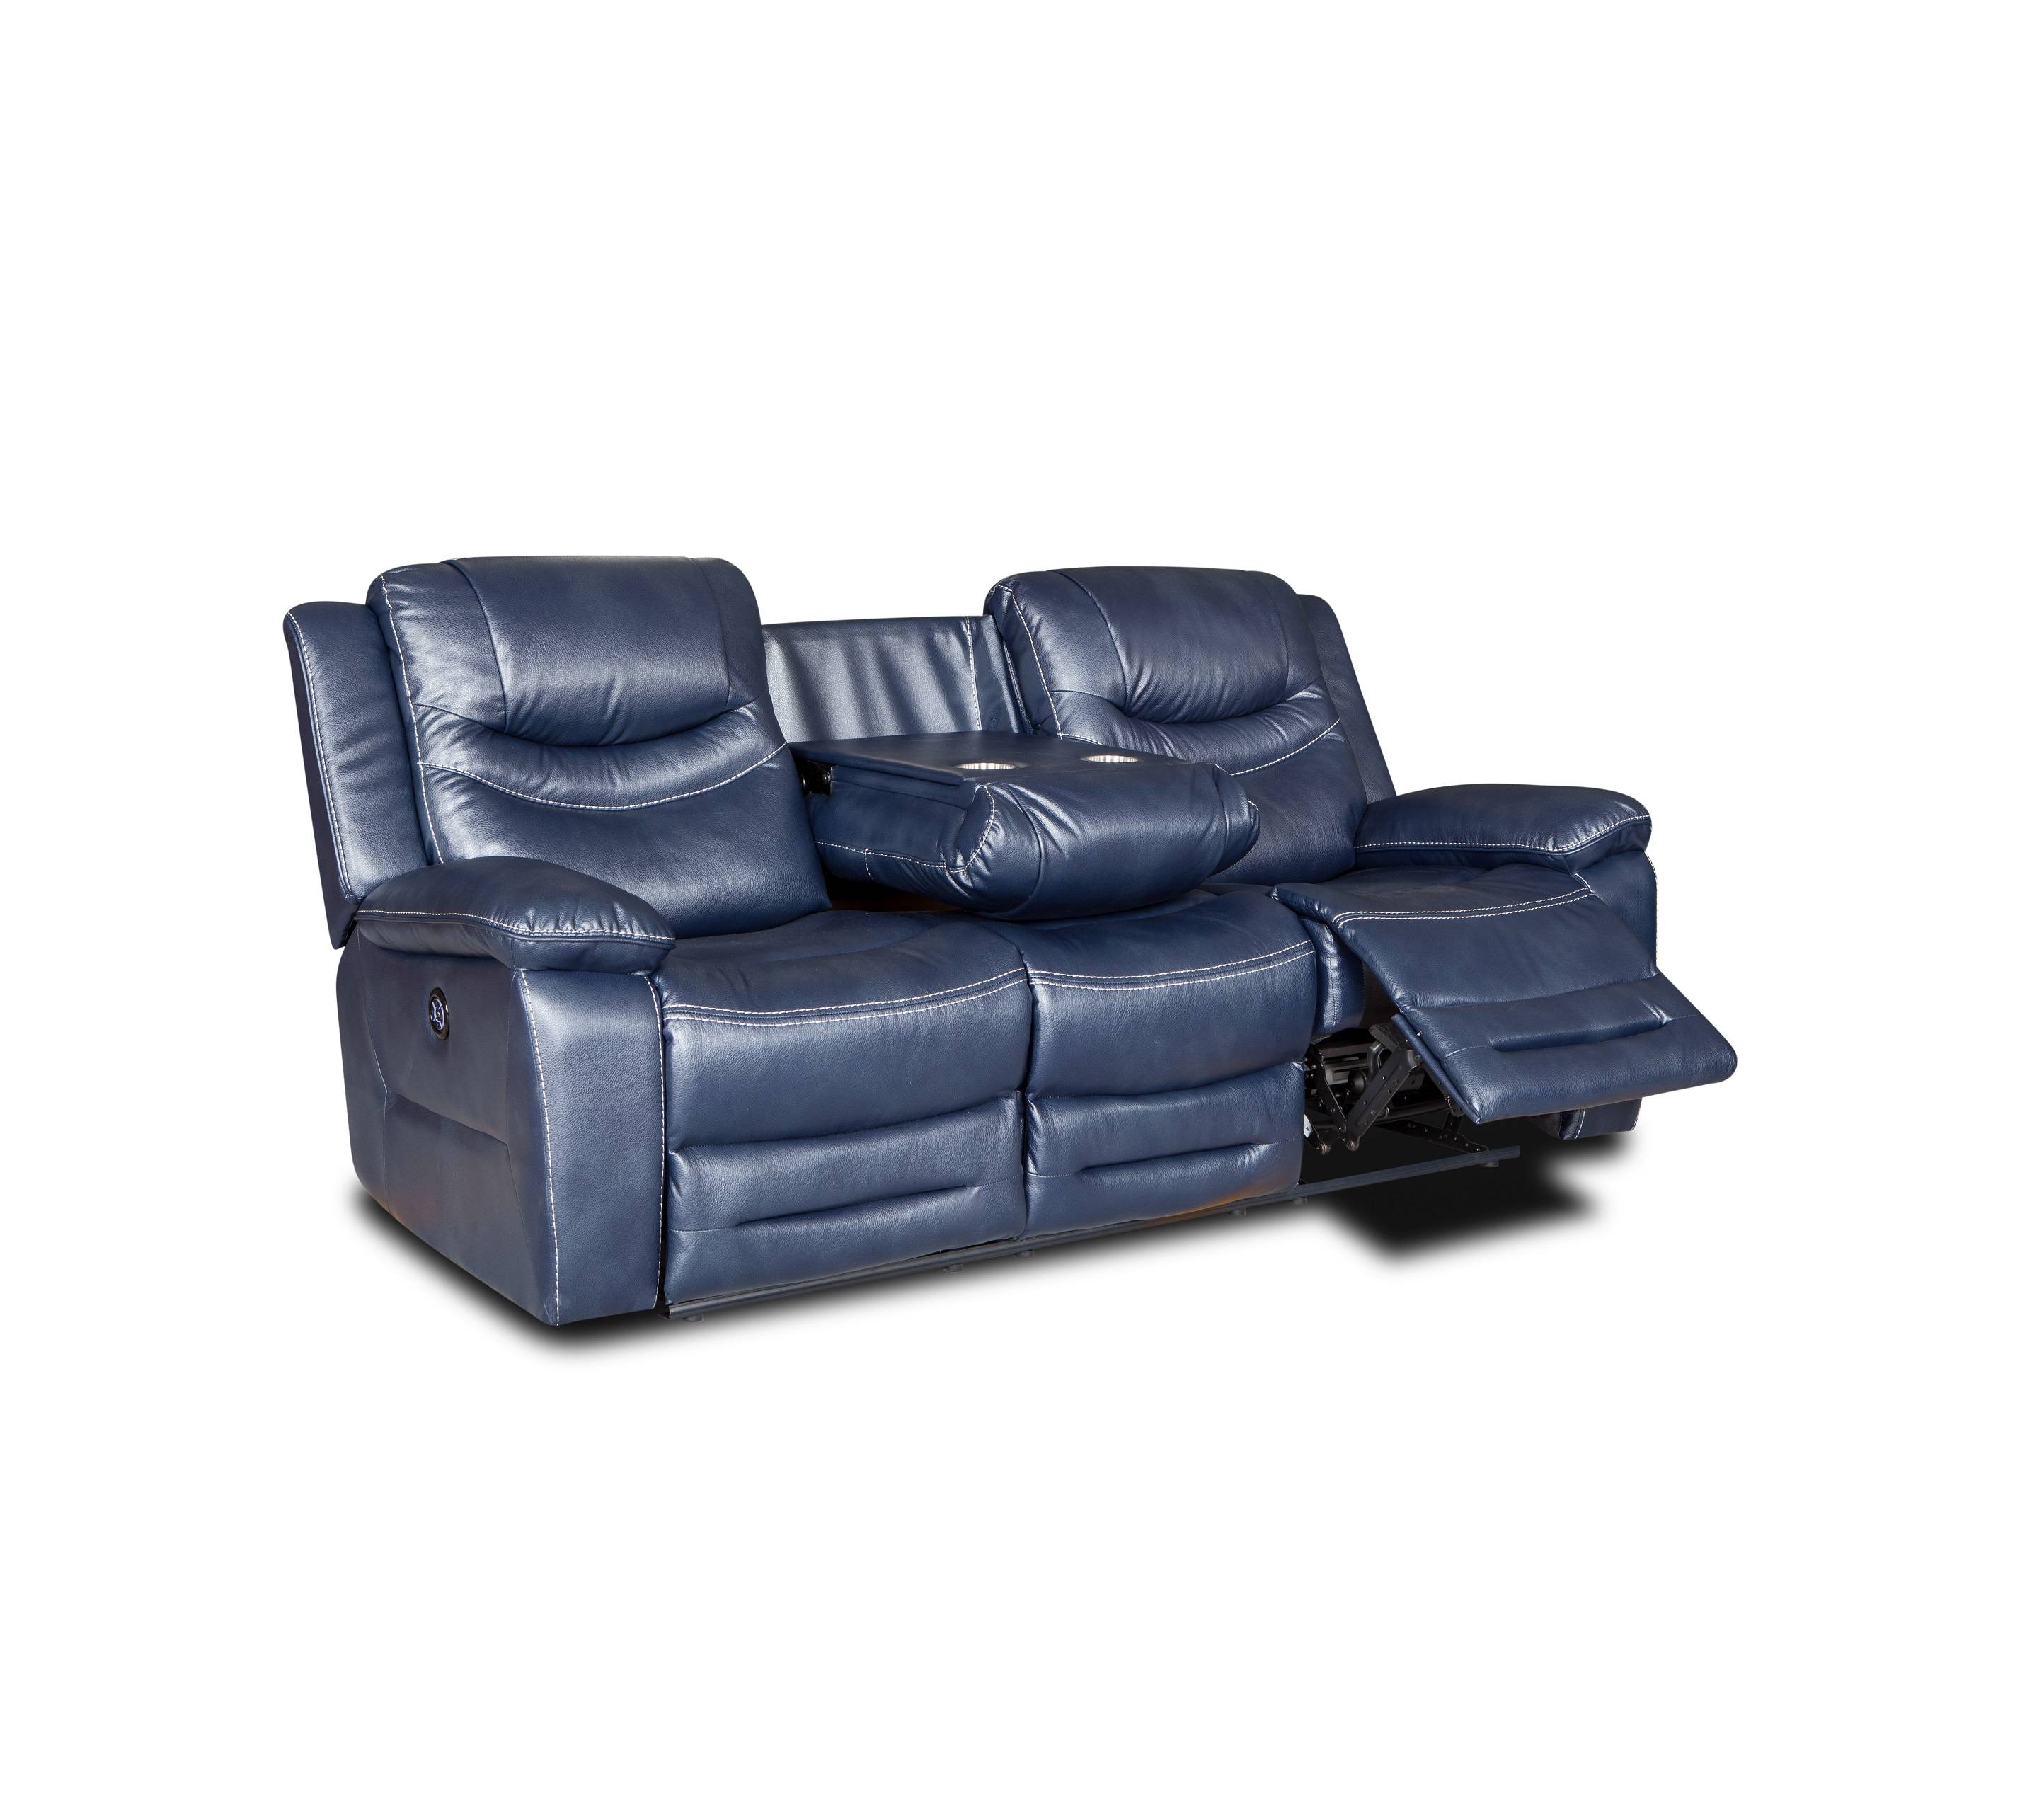 Luxury comfortable foot massage recliner sofa with cup holder